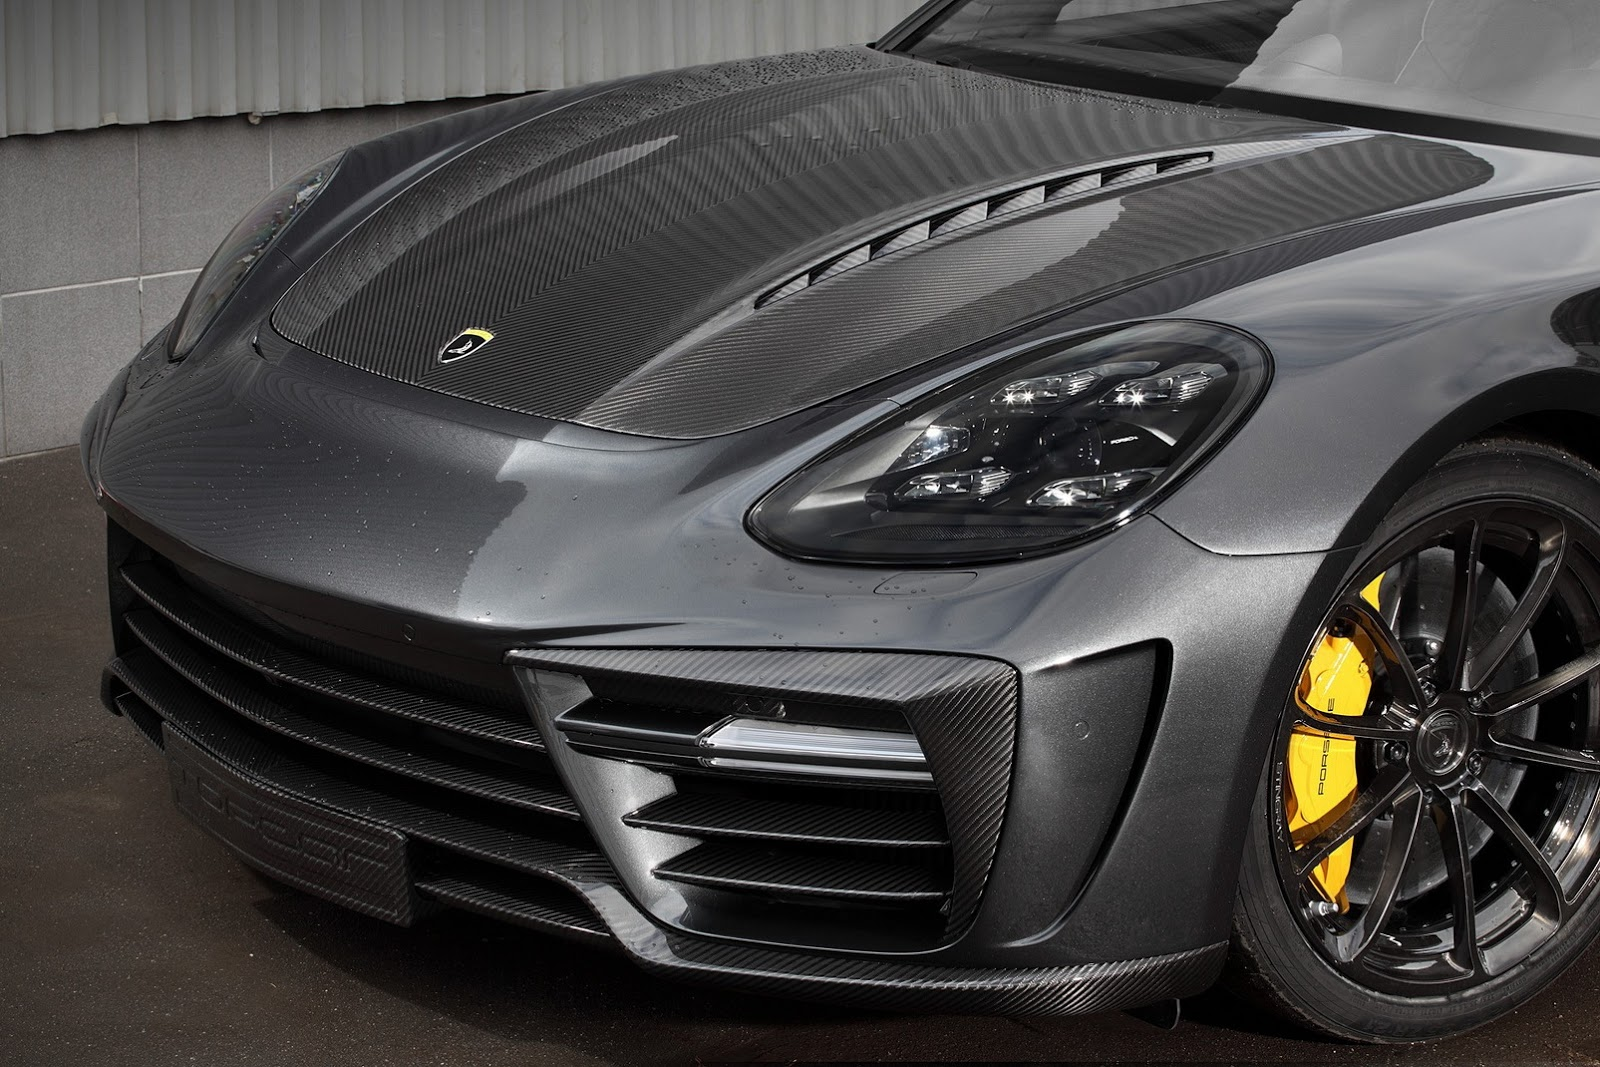 New Porsche Panamera Turbo Topcar Tuning Has Custom